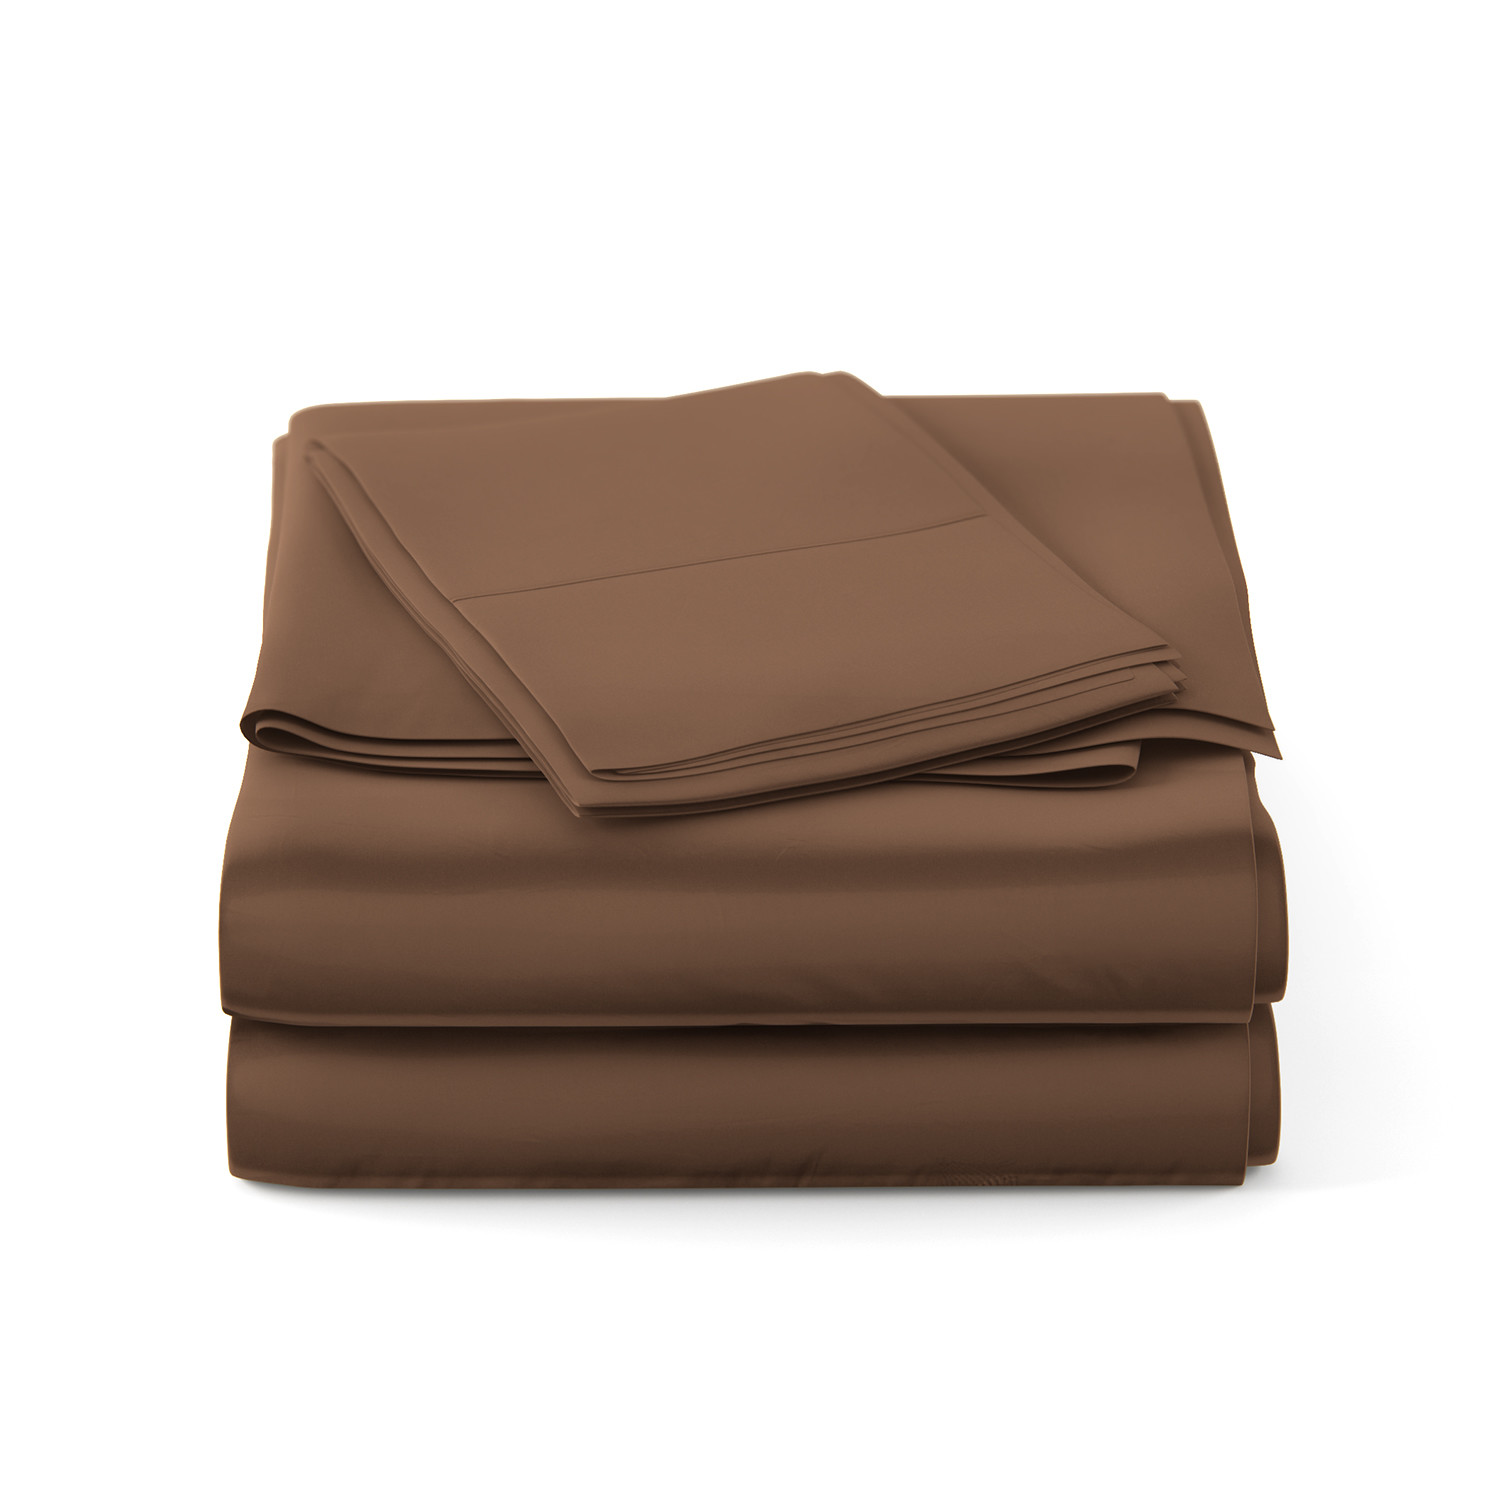 Luxury Bamboo Sheets Chocolate Double Bamboo Sheets